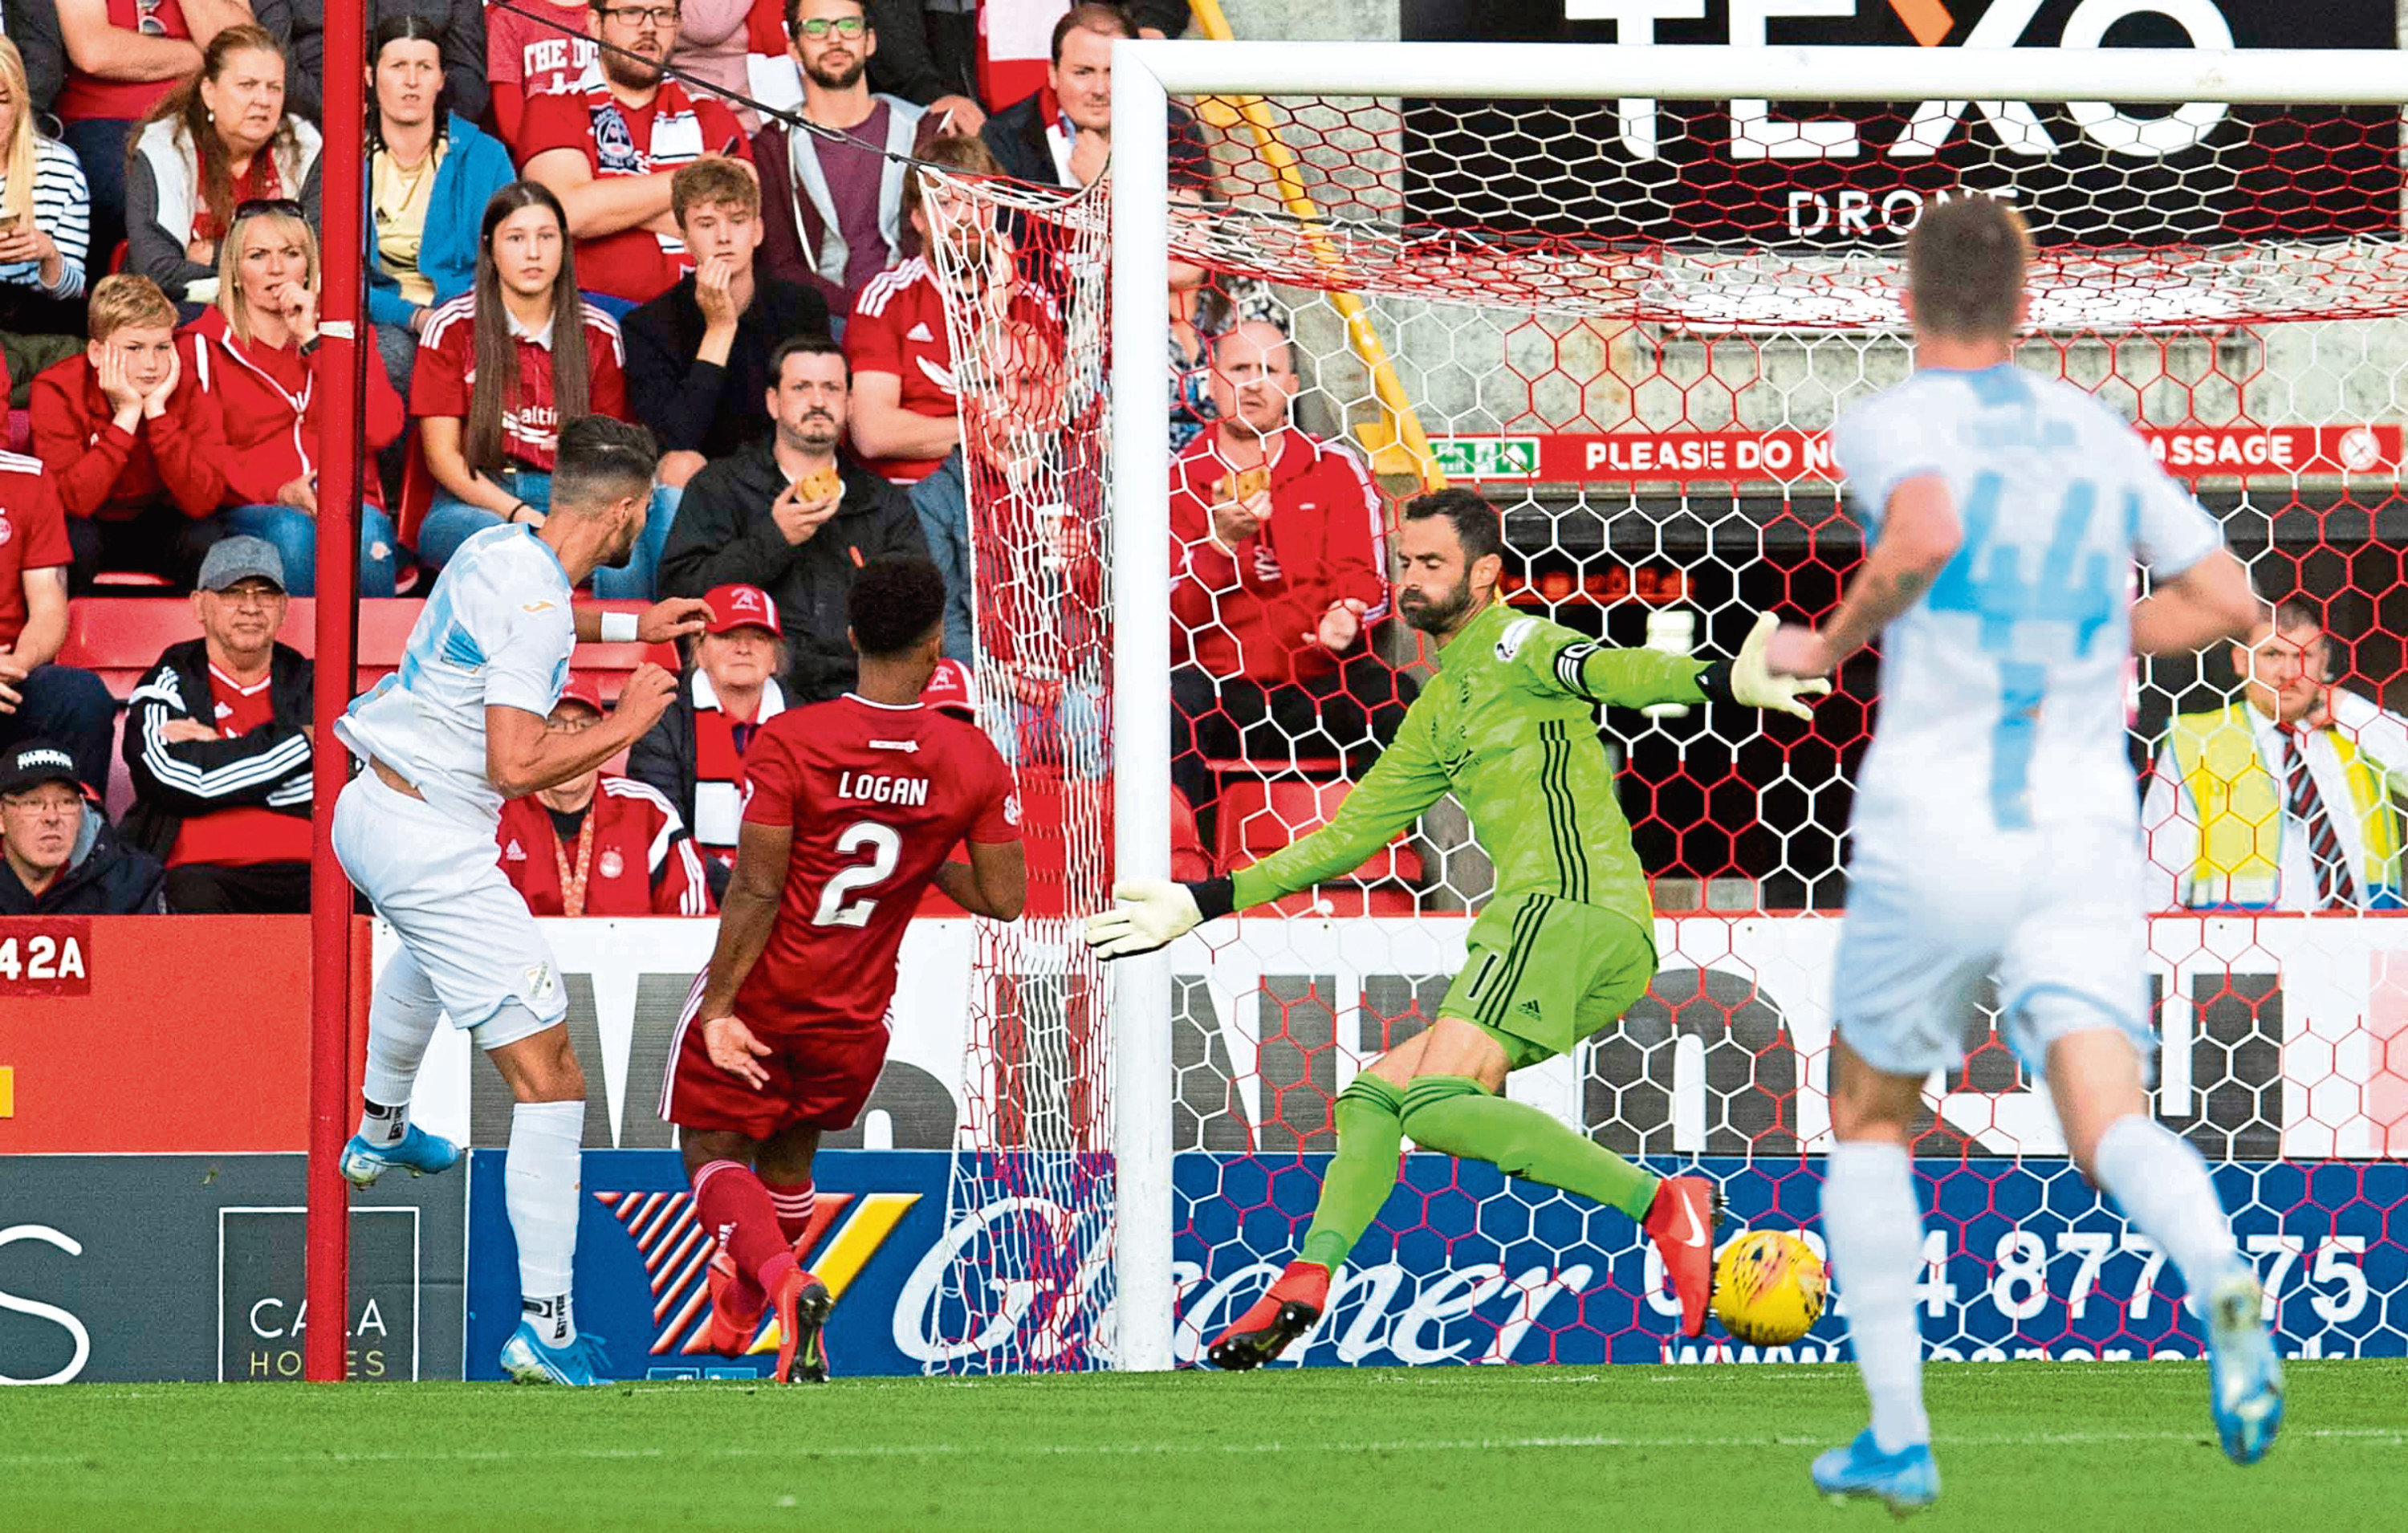 McGinn thinks the cup finale could be fitted around Europa League qualification, which Aberdeen look likely to be part of.